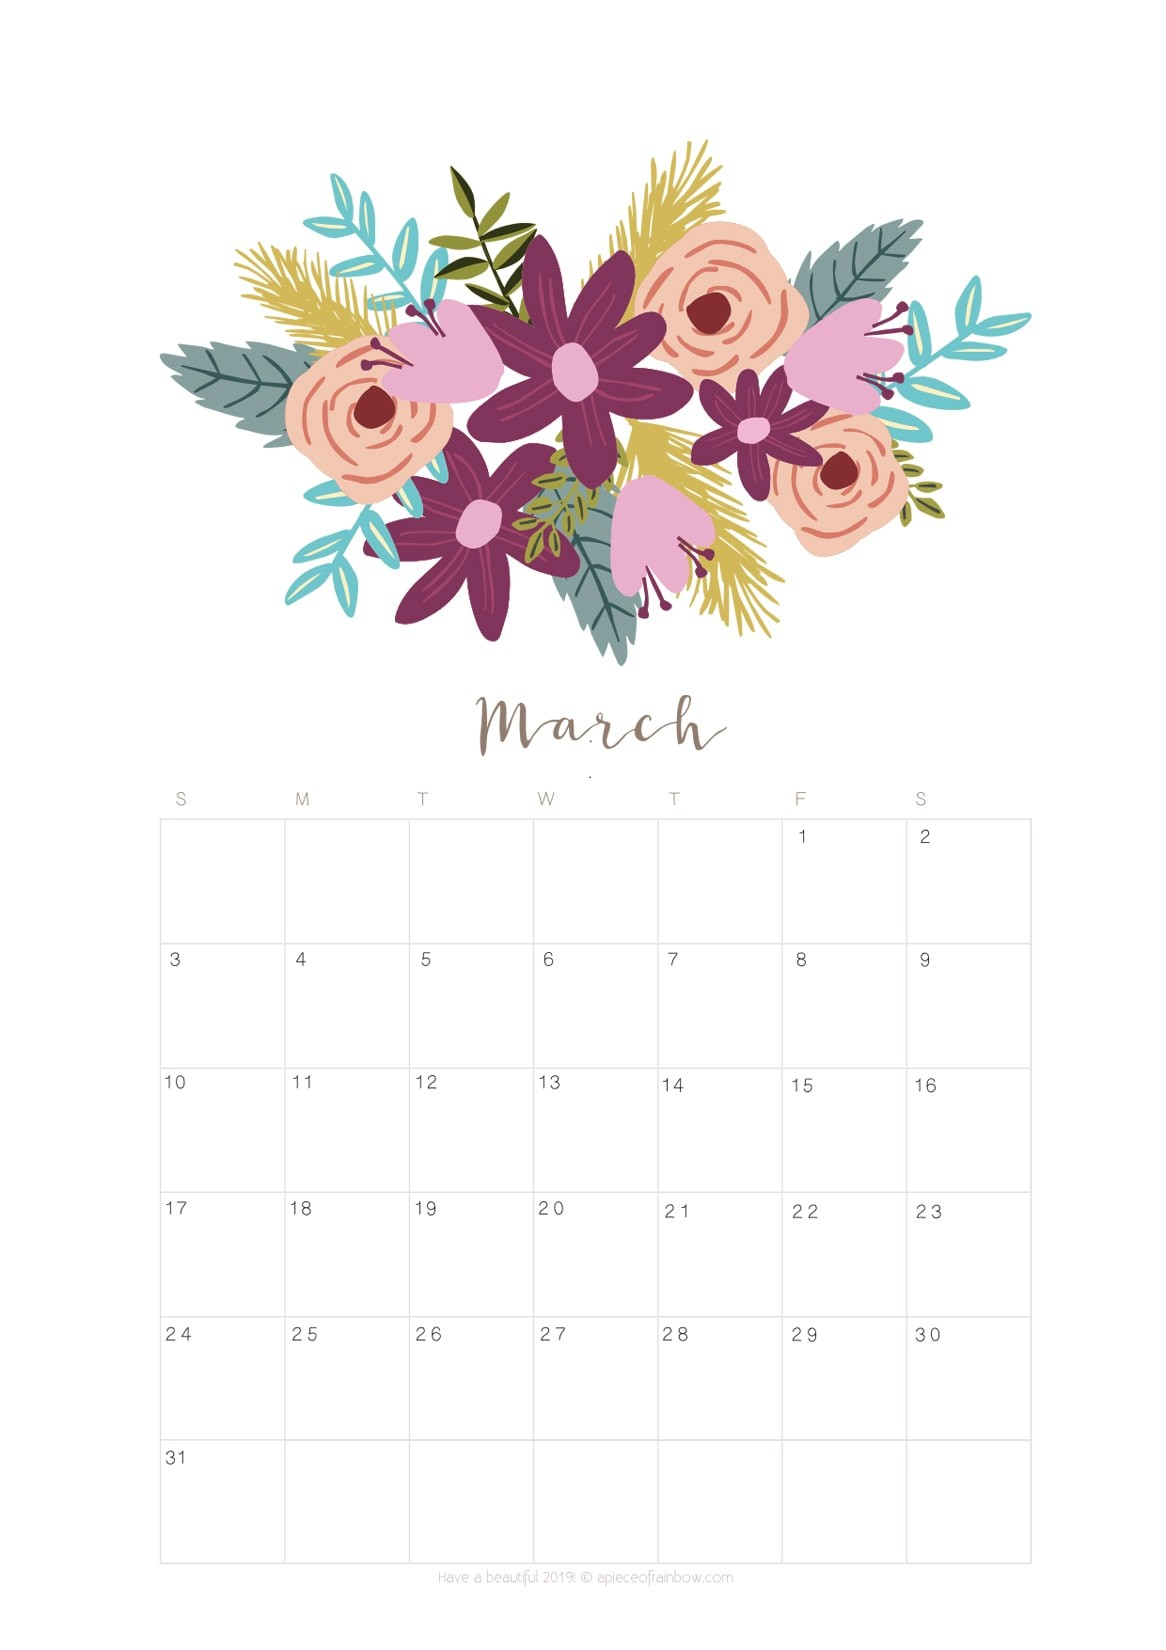 March Calendar 2019 Más Actual Printable March 2019 Calendar Monthly Planner 2 Designs Flowers Of March Calendar 2019 Más Populares February March Calendar 2019 2018 Printable Calendar Store